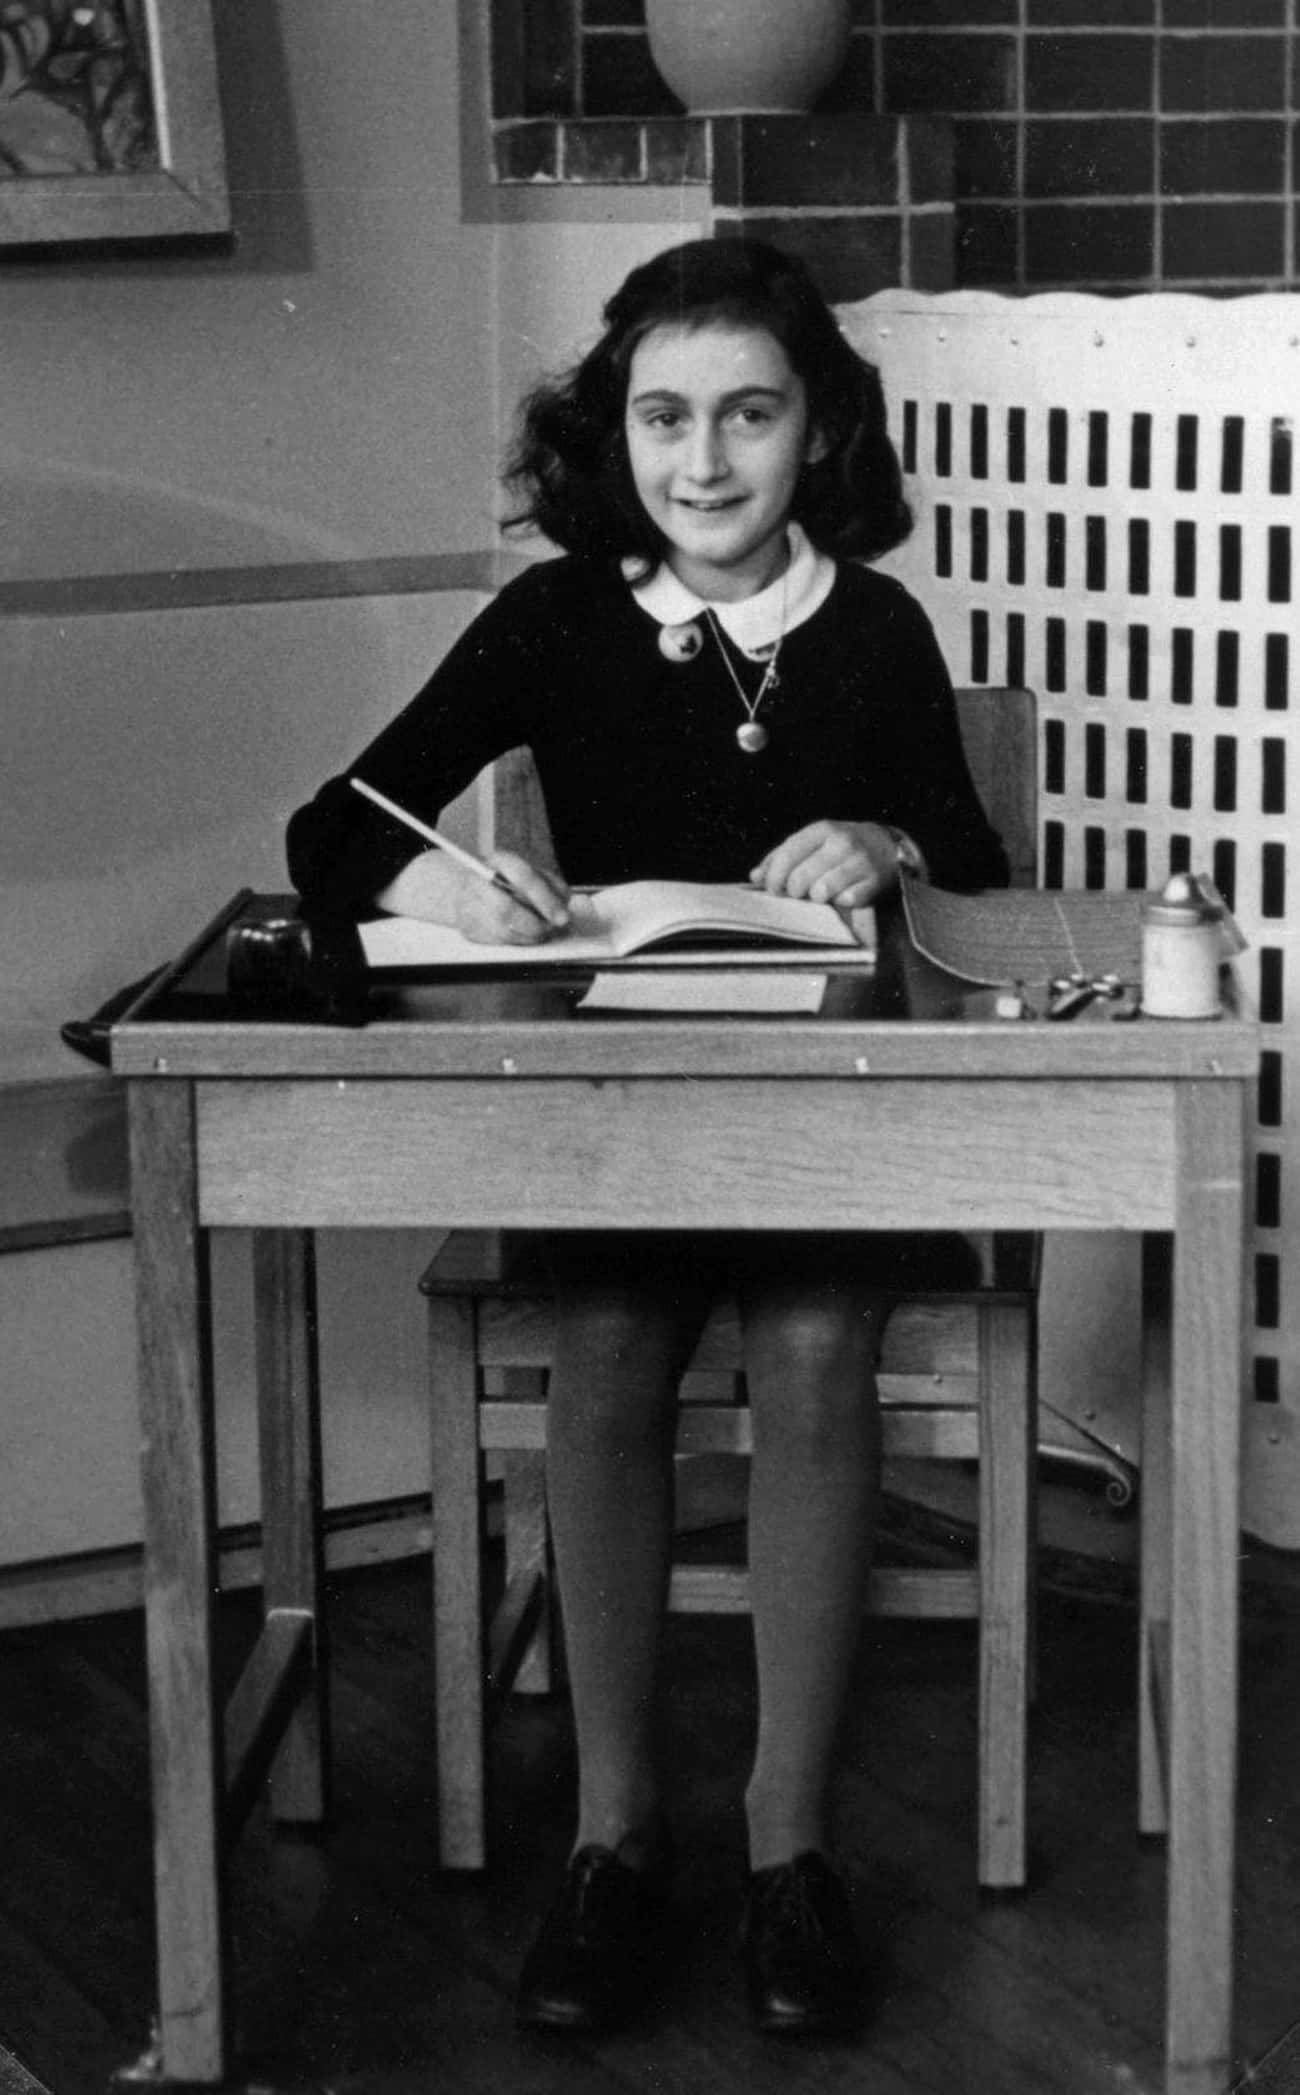 Anne Frank's Family Hid In An  is listed (or ranked) 3 on the list Stories Of People Who Hid From The Nazis During World War II